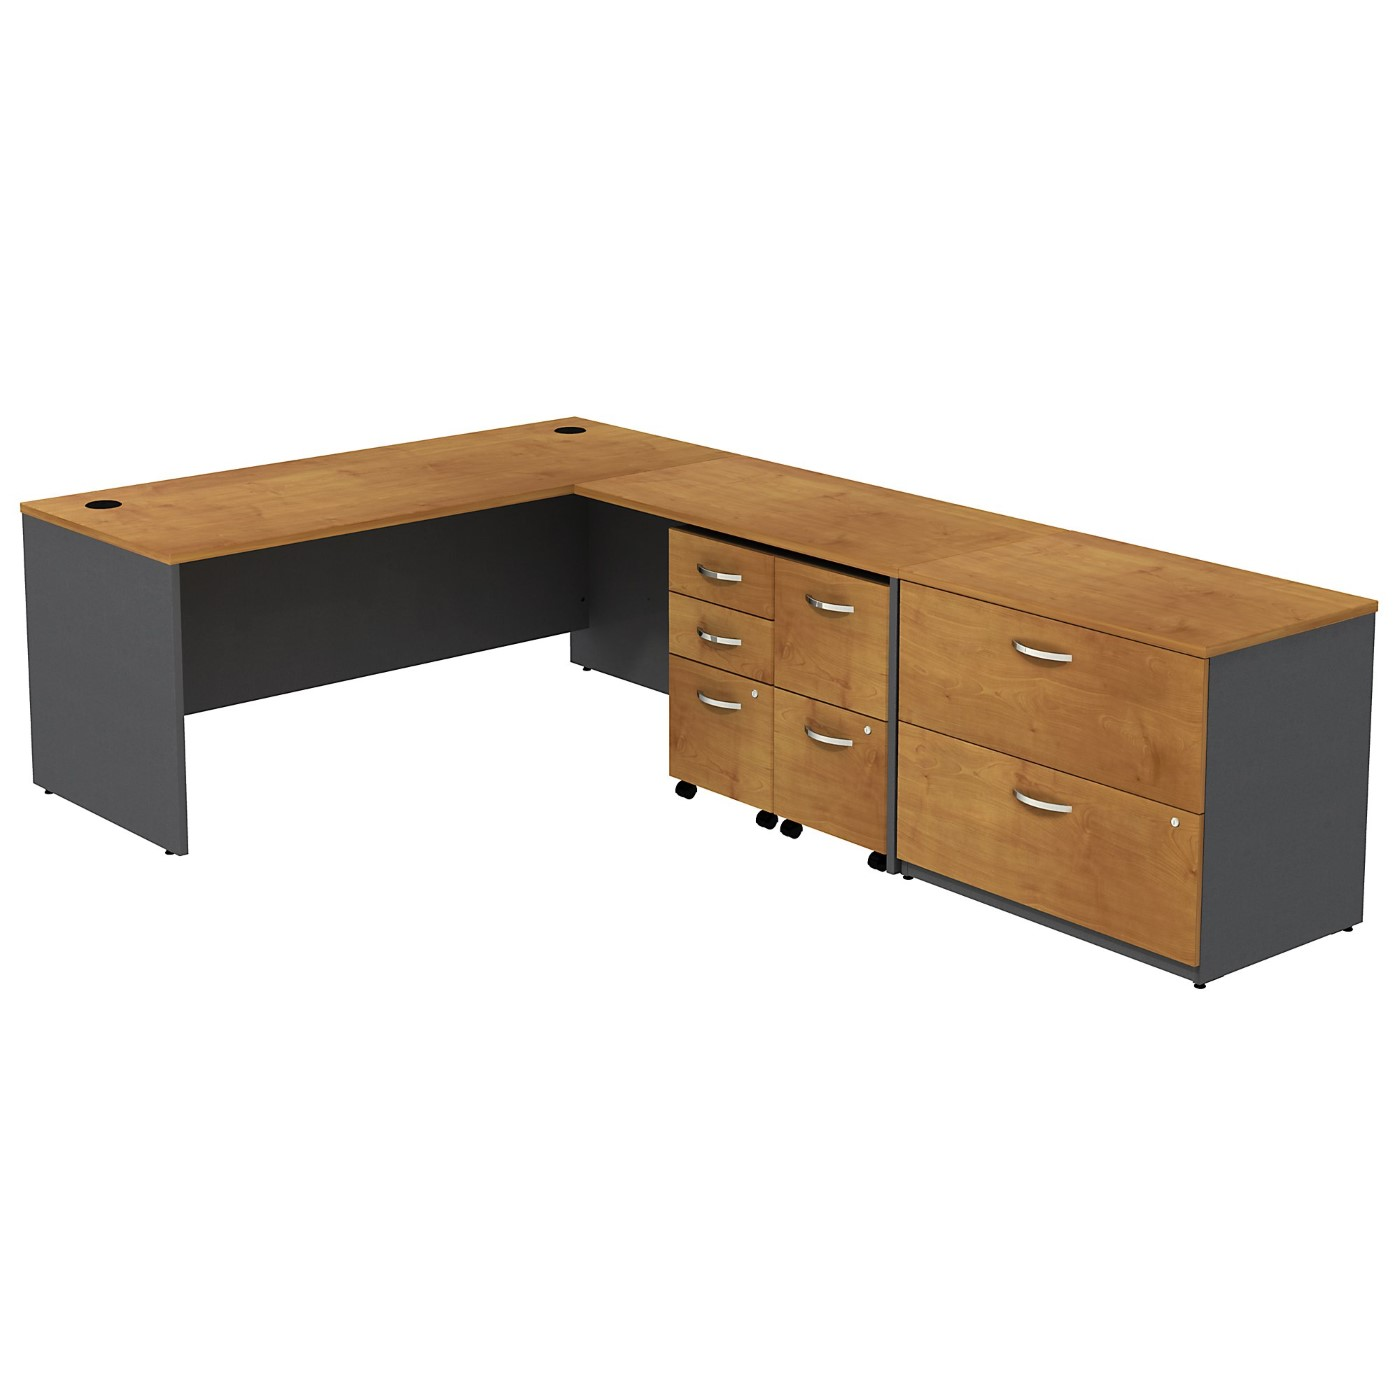 BUSH BUSINESS FURNITURE SERIES C L SHAPED DESK WITH 2 MOBILE PEDESTALS AND LATERAL FILE CABINET. FREE SHIPPING